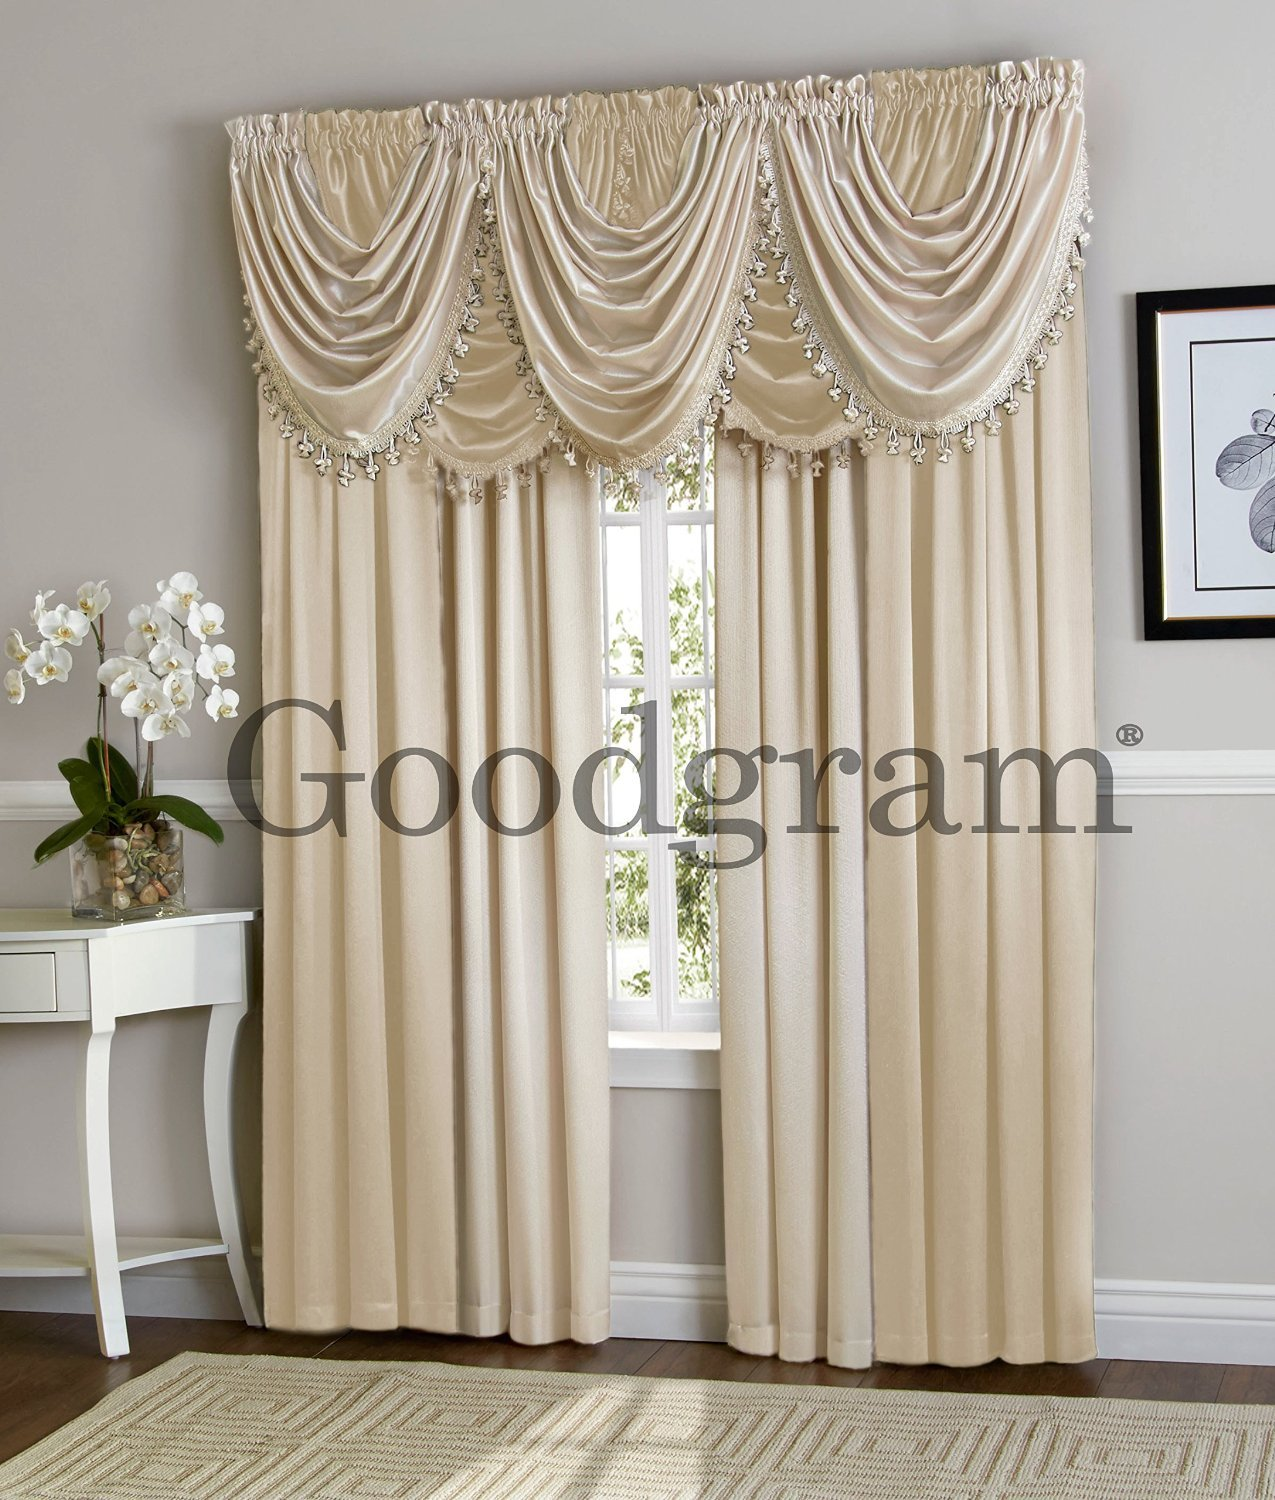 Hilton Curtain Waterfall Fringed Single Valance Only Window Treatments Beige Ebay